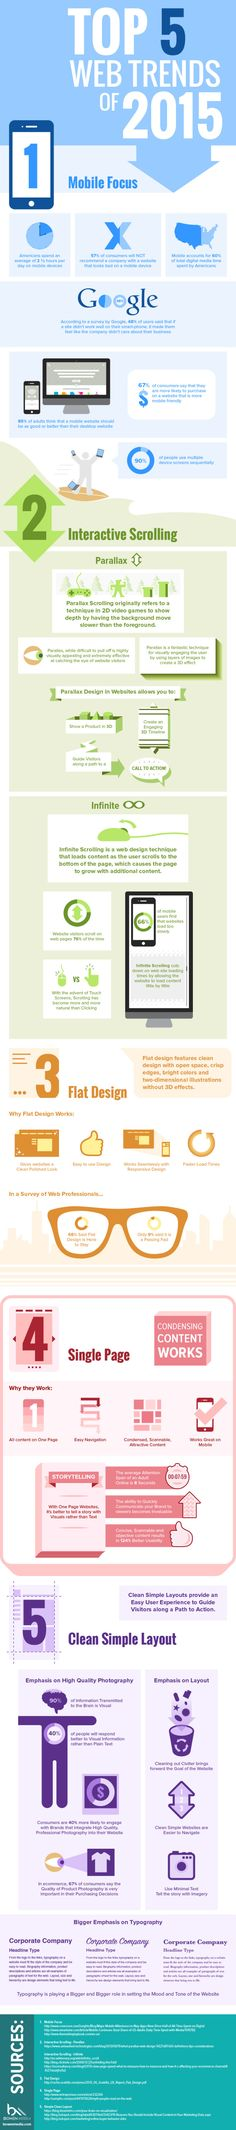 Infographic: Five Web Trends That May Take Off In 2015 - DesignTAXI.com